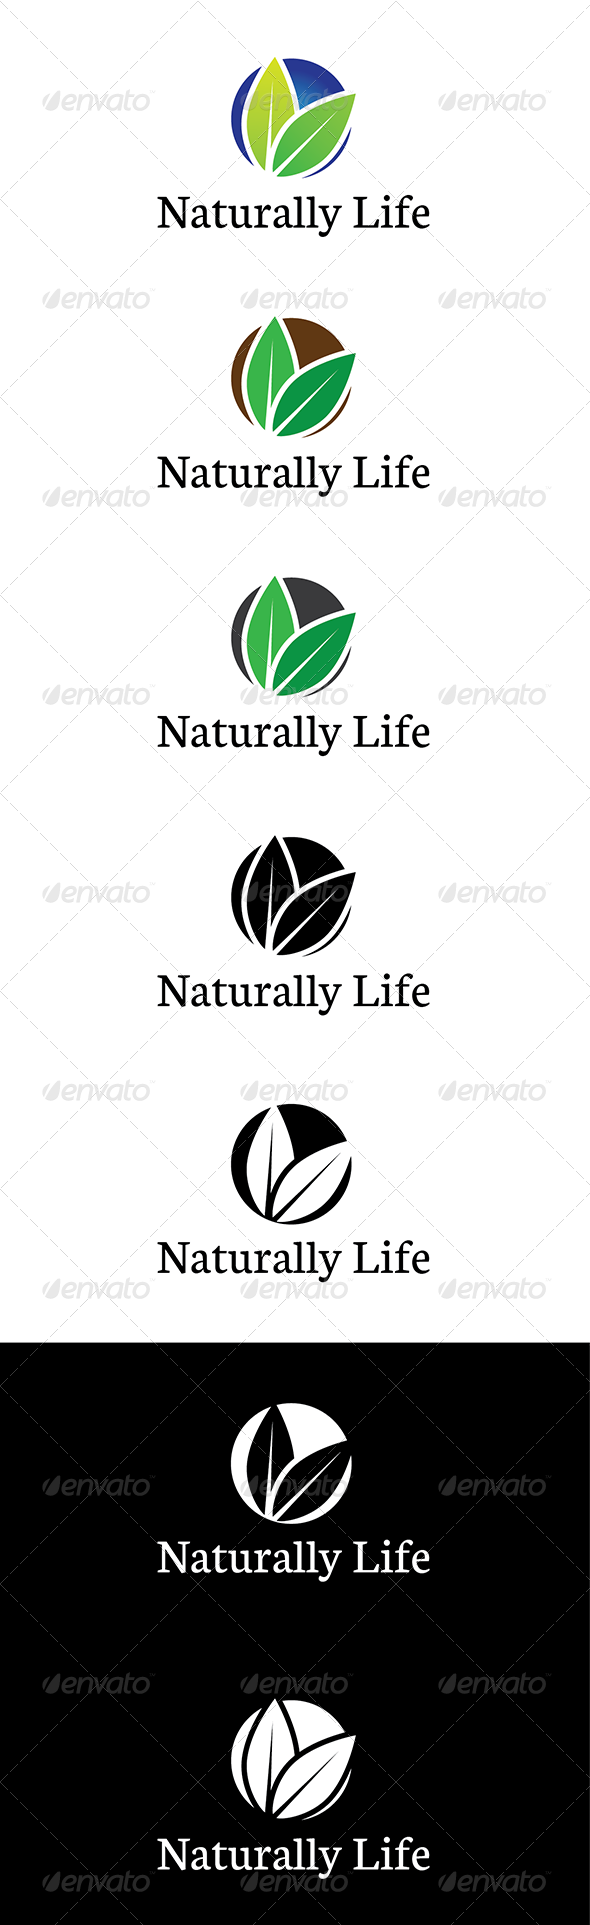 GraphicRiver Naturally Life Logo 5924250